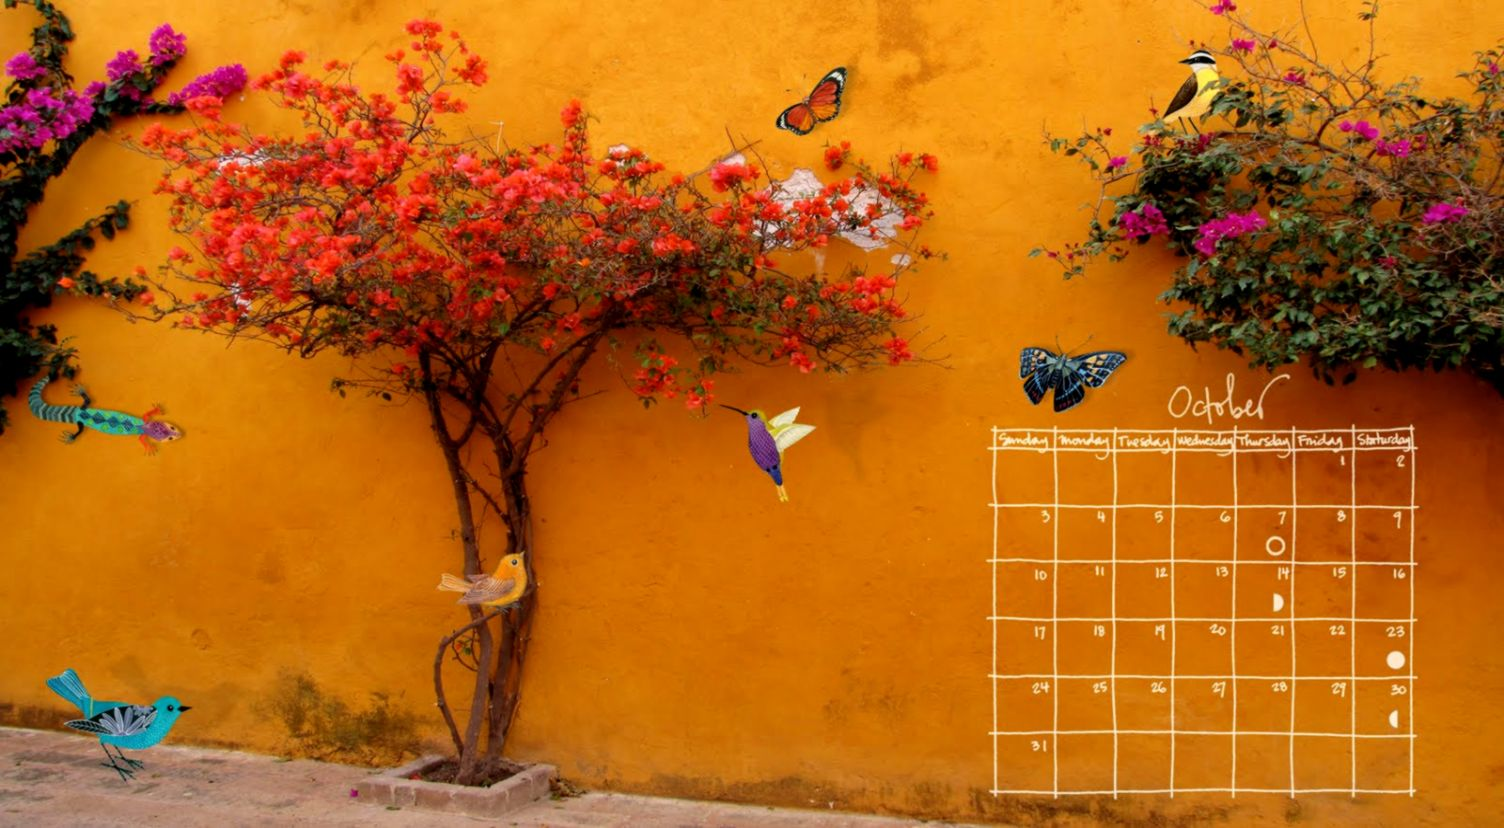 October Calendar High Resolution wallpaper holidays Wallpaper